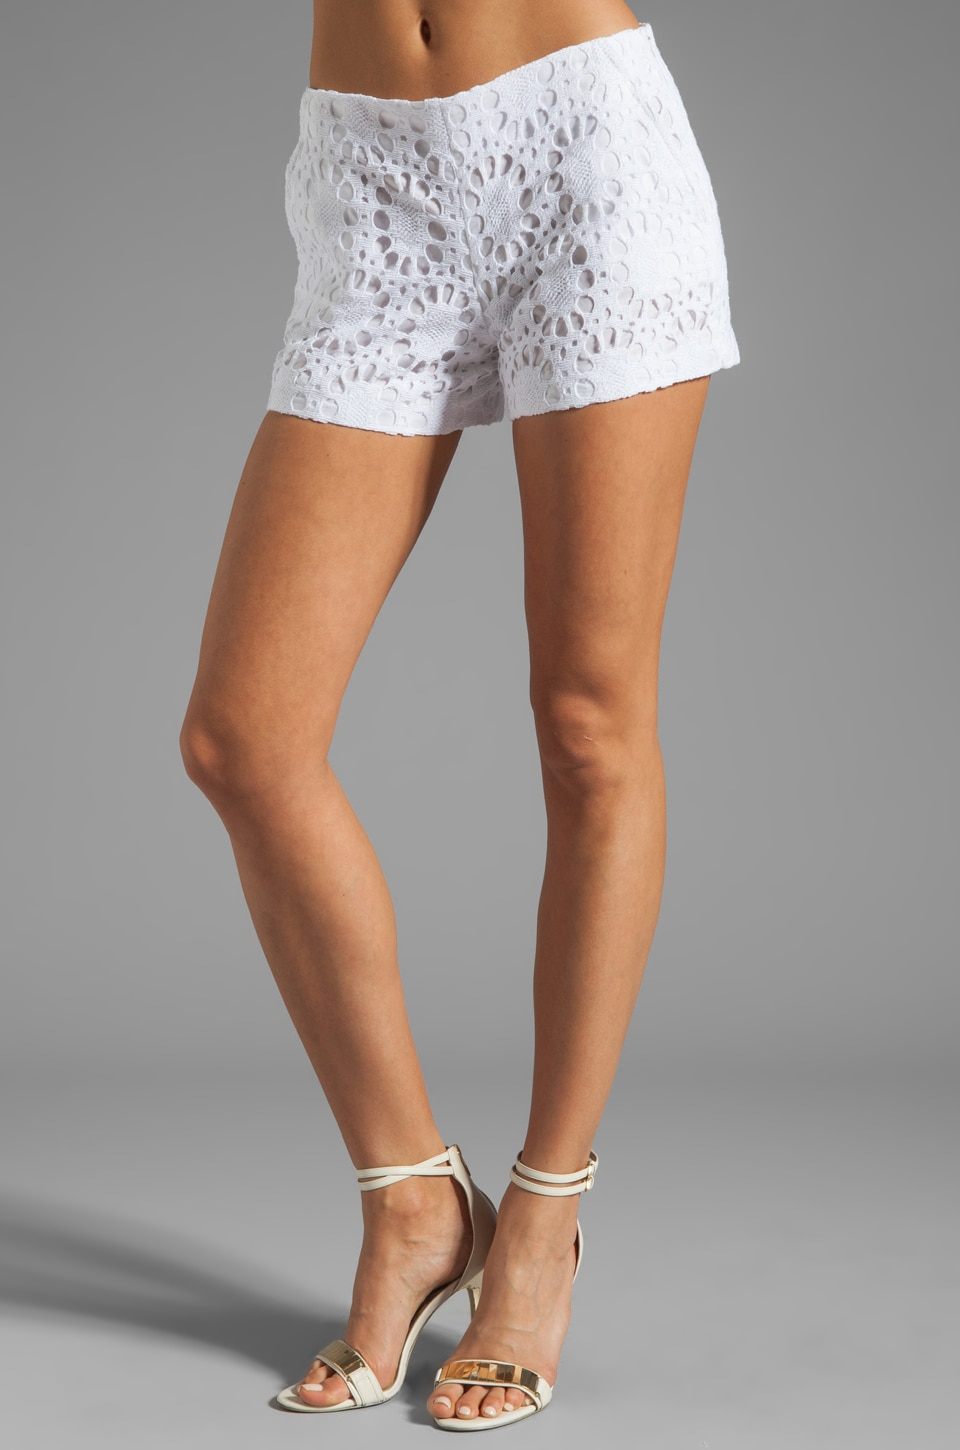 Trina Turk Link Crochet Shorts in White